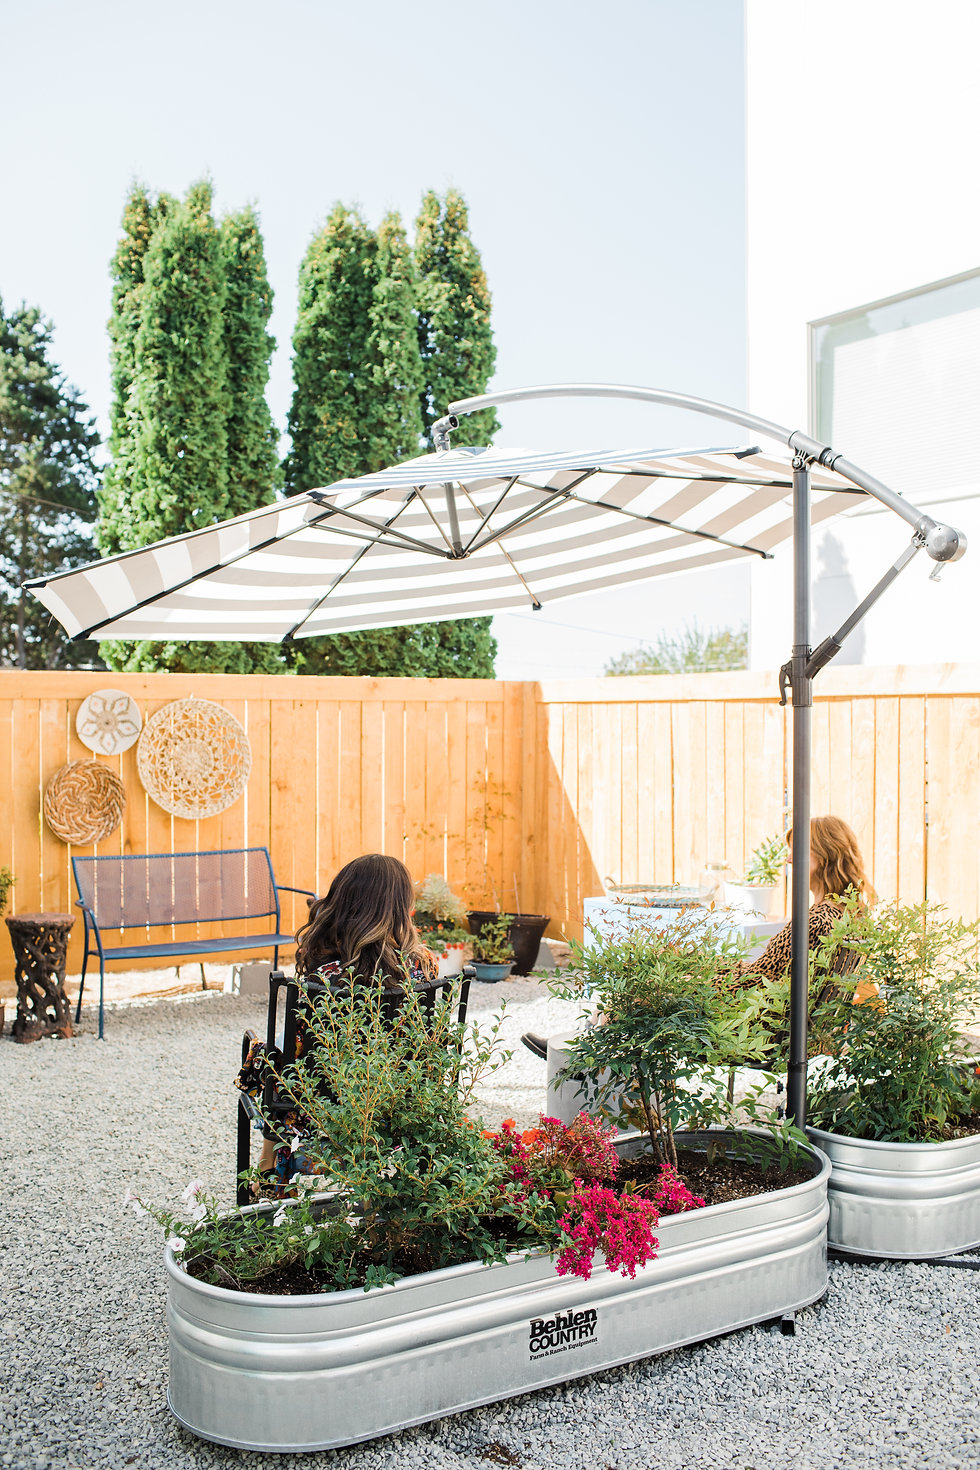 Outdoor seating at La Vie Salon where you can wait while getting your hair styled and colored